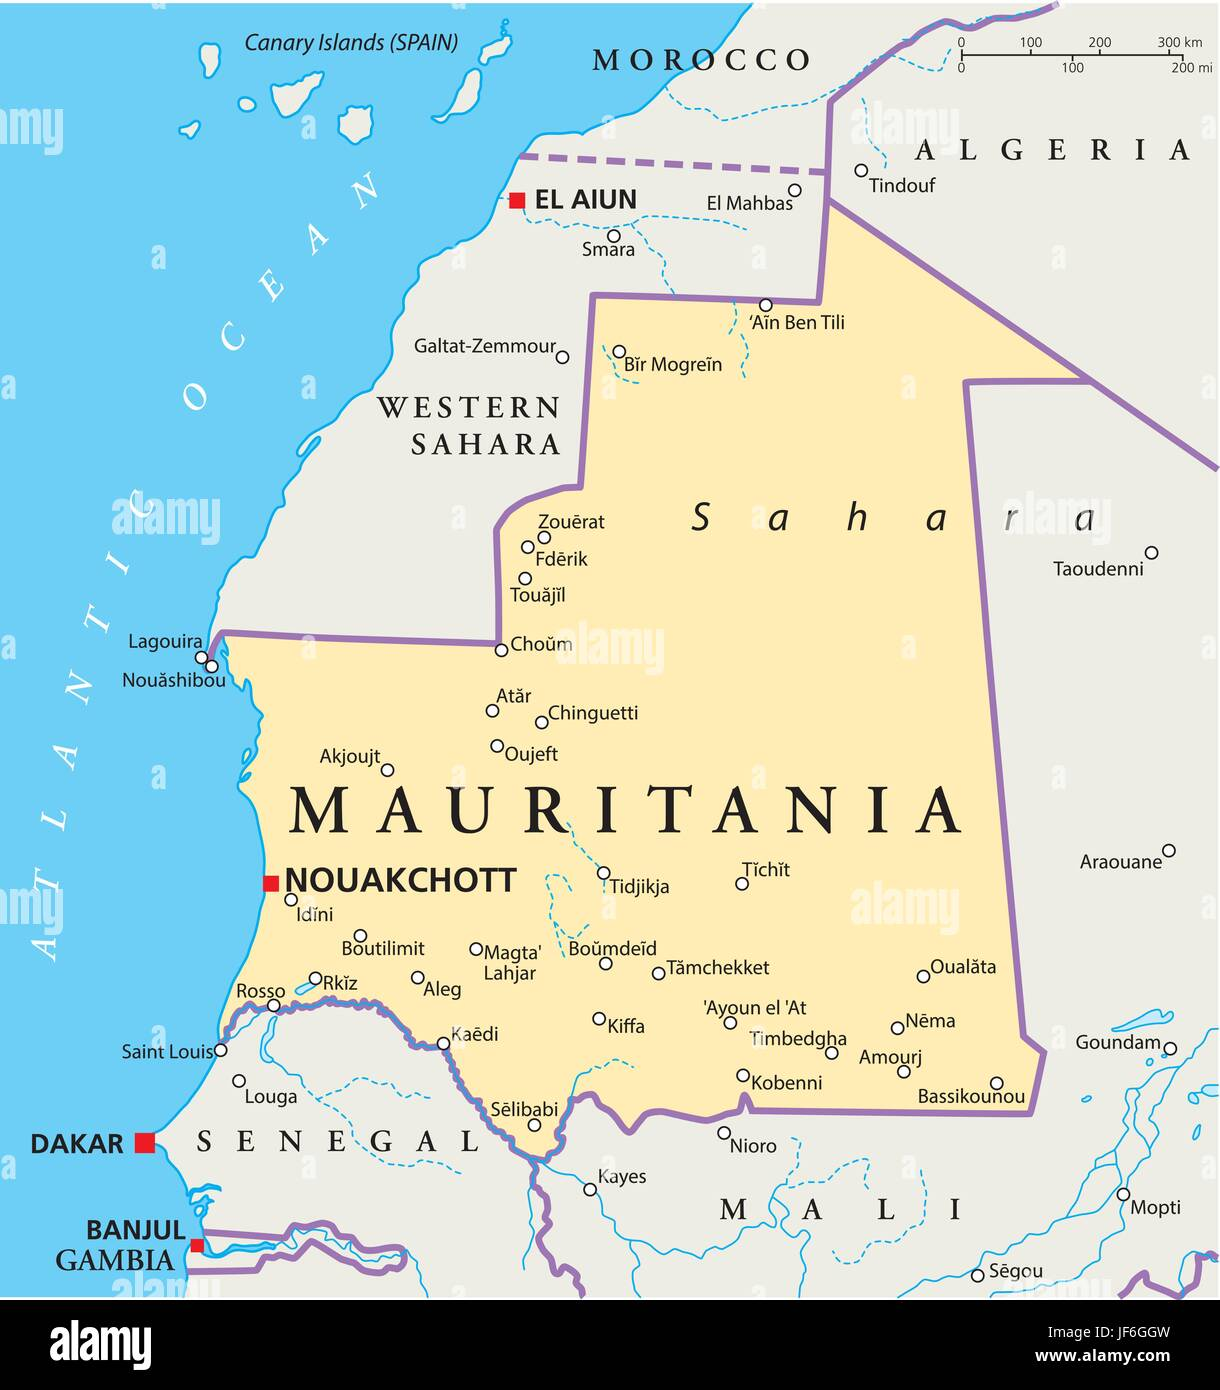 mauritania, map, atlas, map of the world, travel, political